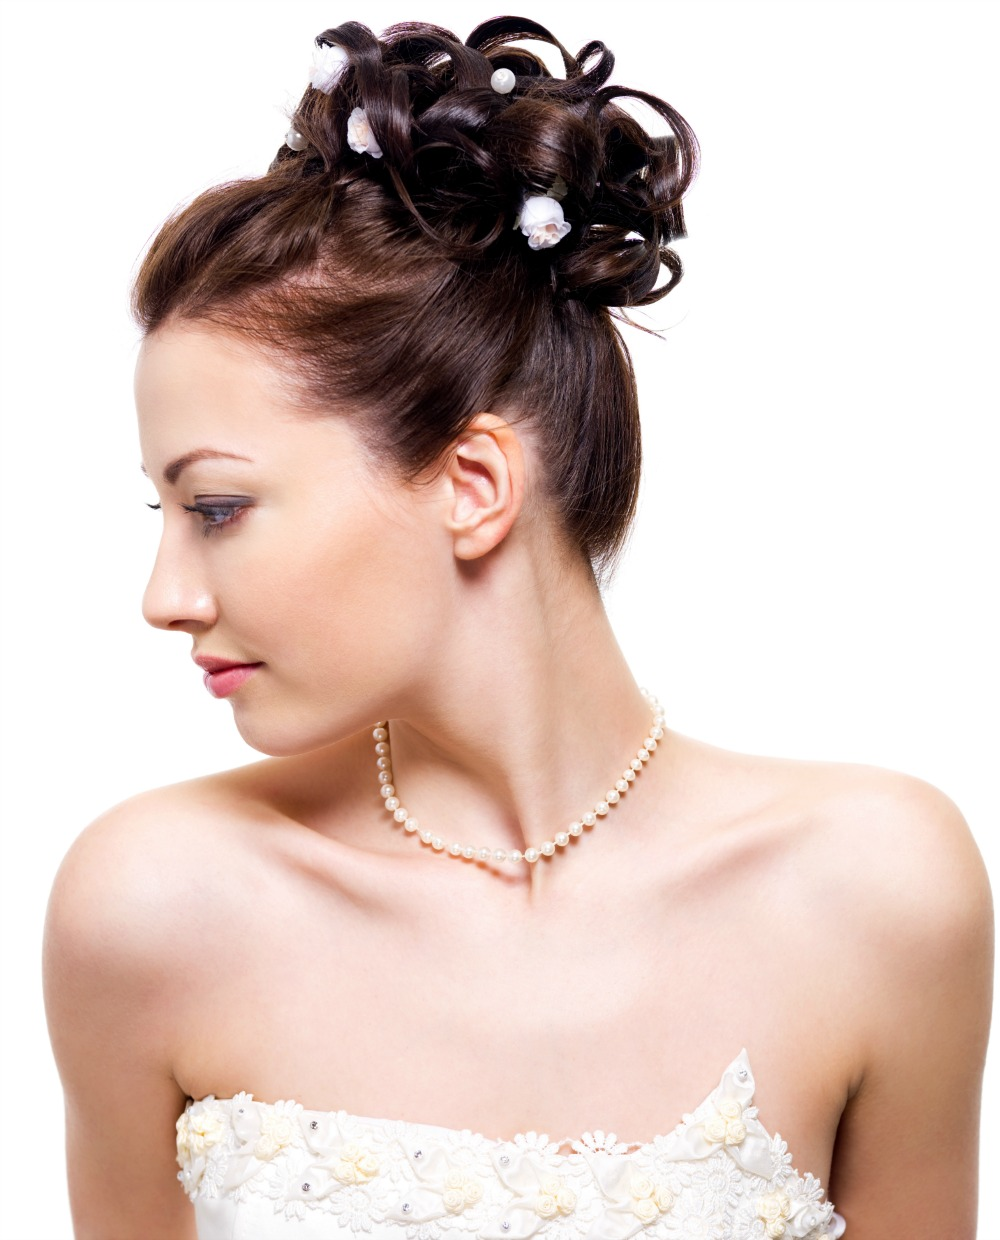 17 Wedding Hairstyles You Ll Adore: 40 Wedding Hairstyles You'll Absolutely Want To Try